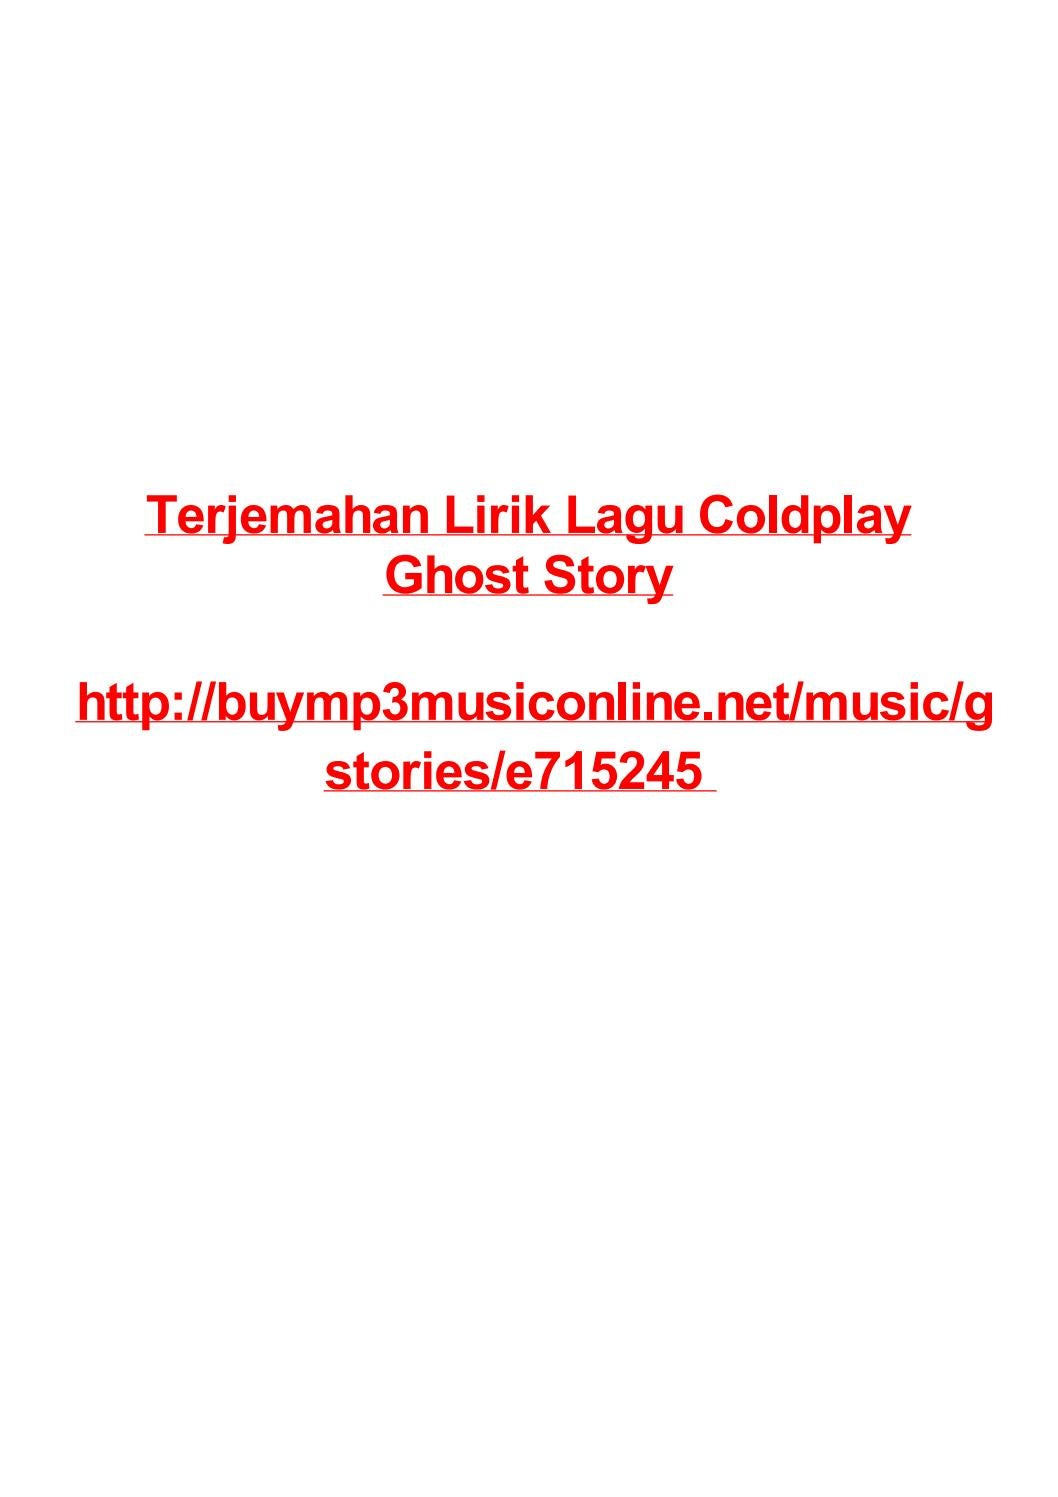 Terjemahan lirik lagu coldplay ghost story by Max Polansky - issuu